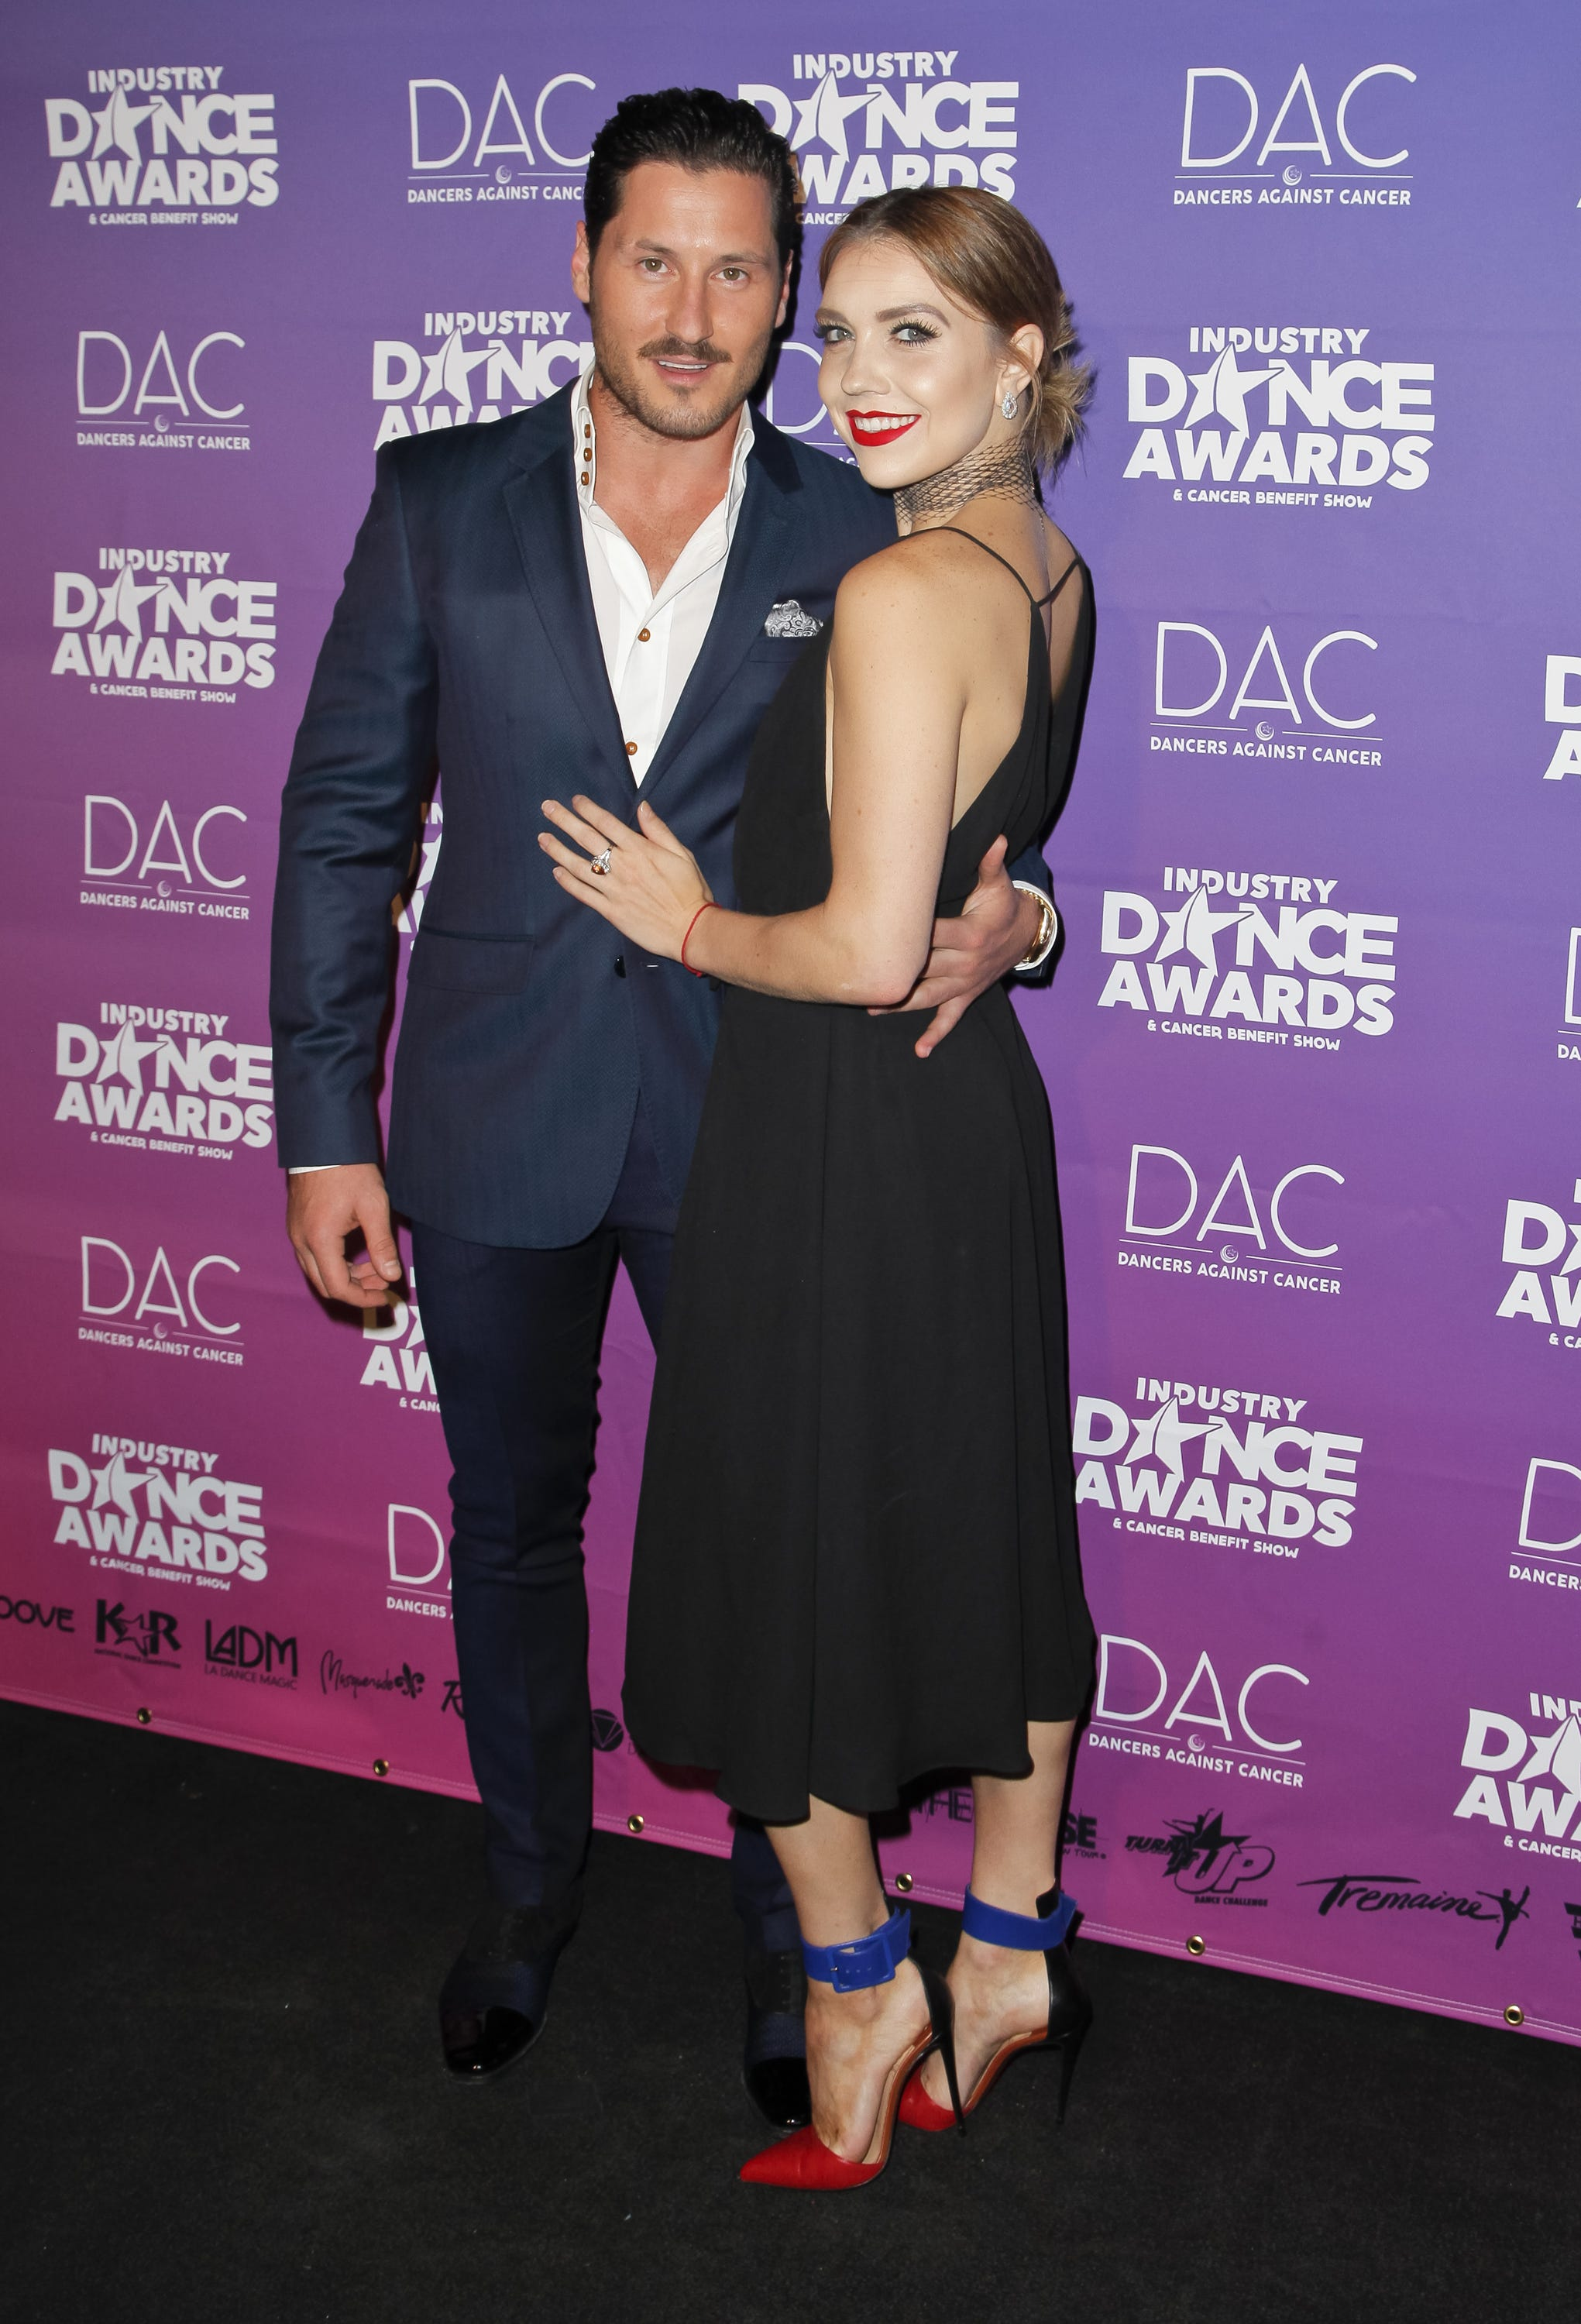 Val dancing with the stars dating 2019